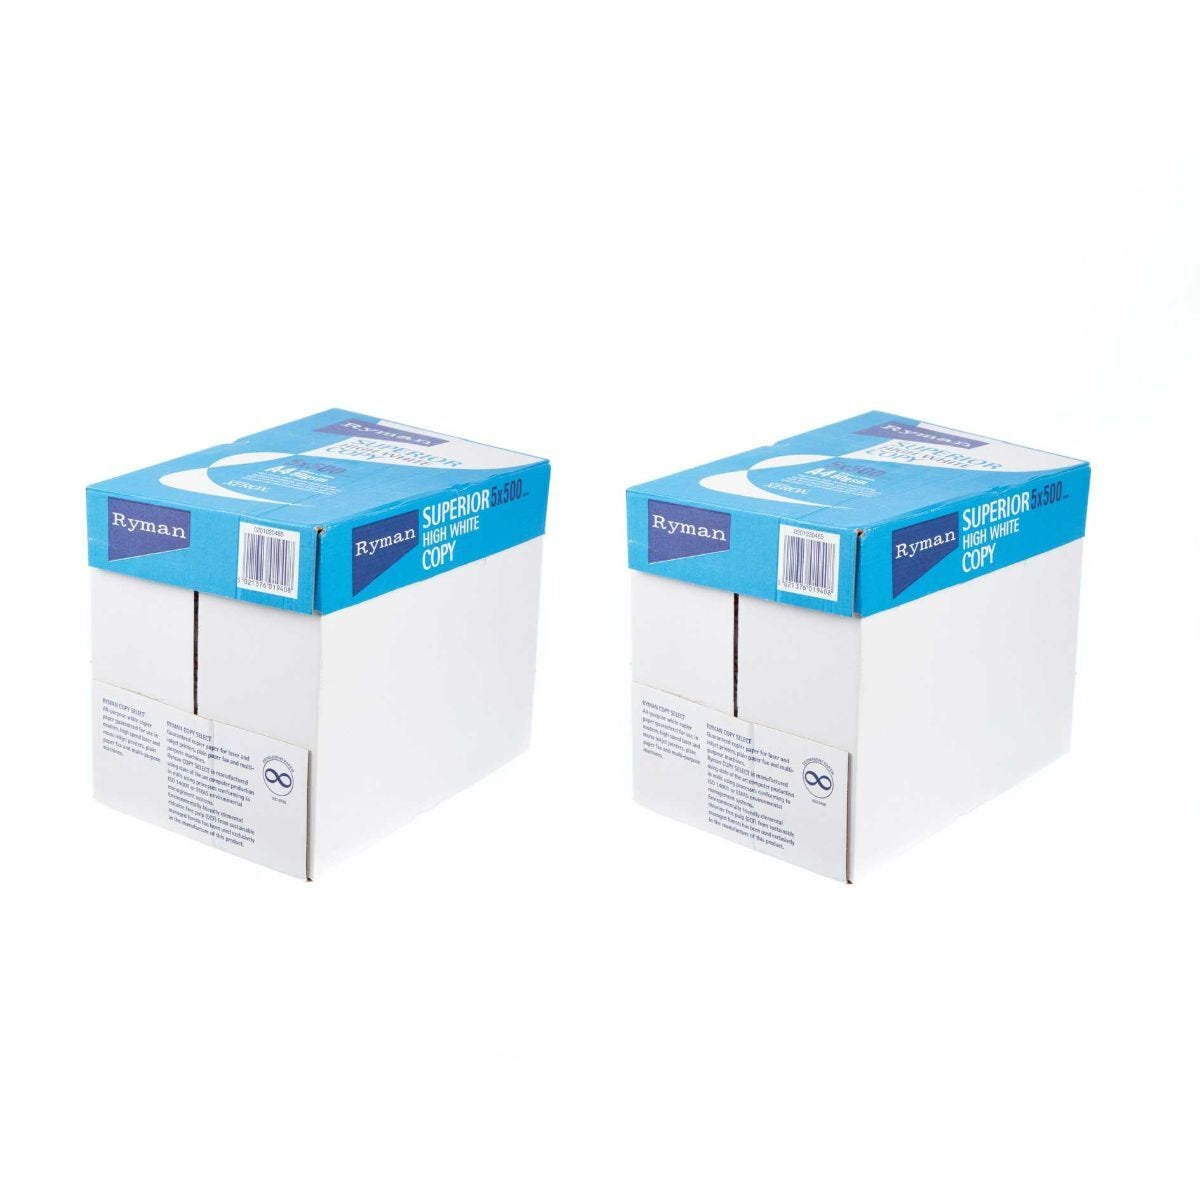 Ryman Superior Copy Paper A4 80gsm 500 Sheets Pack of 10